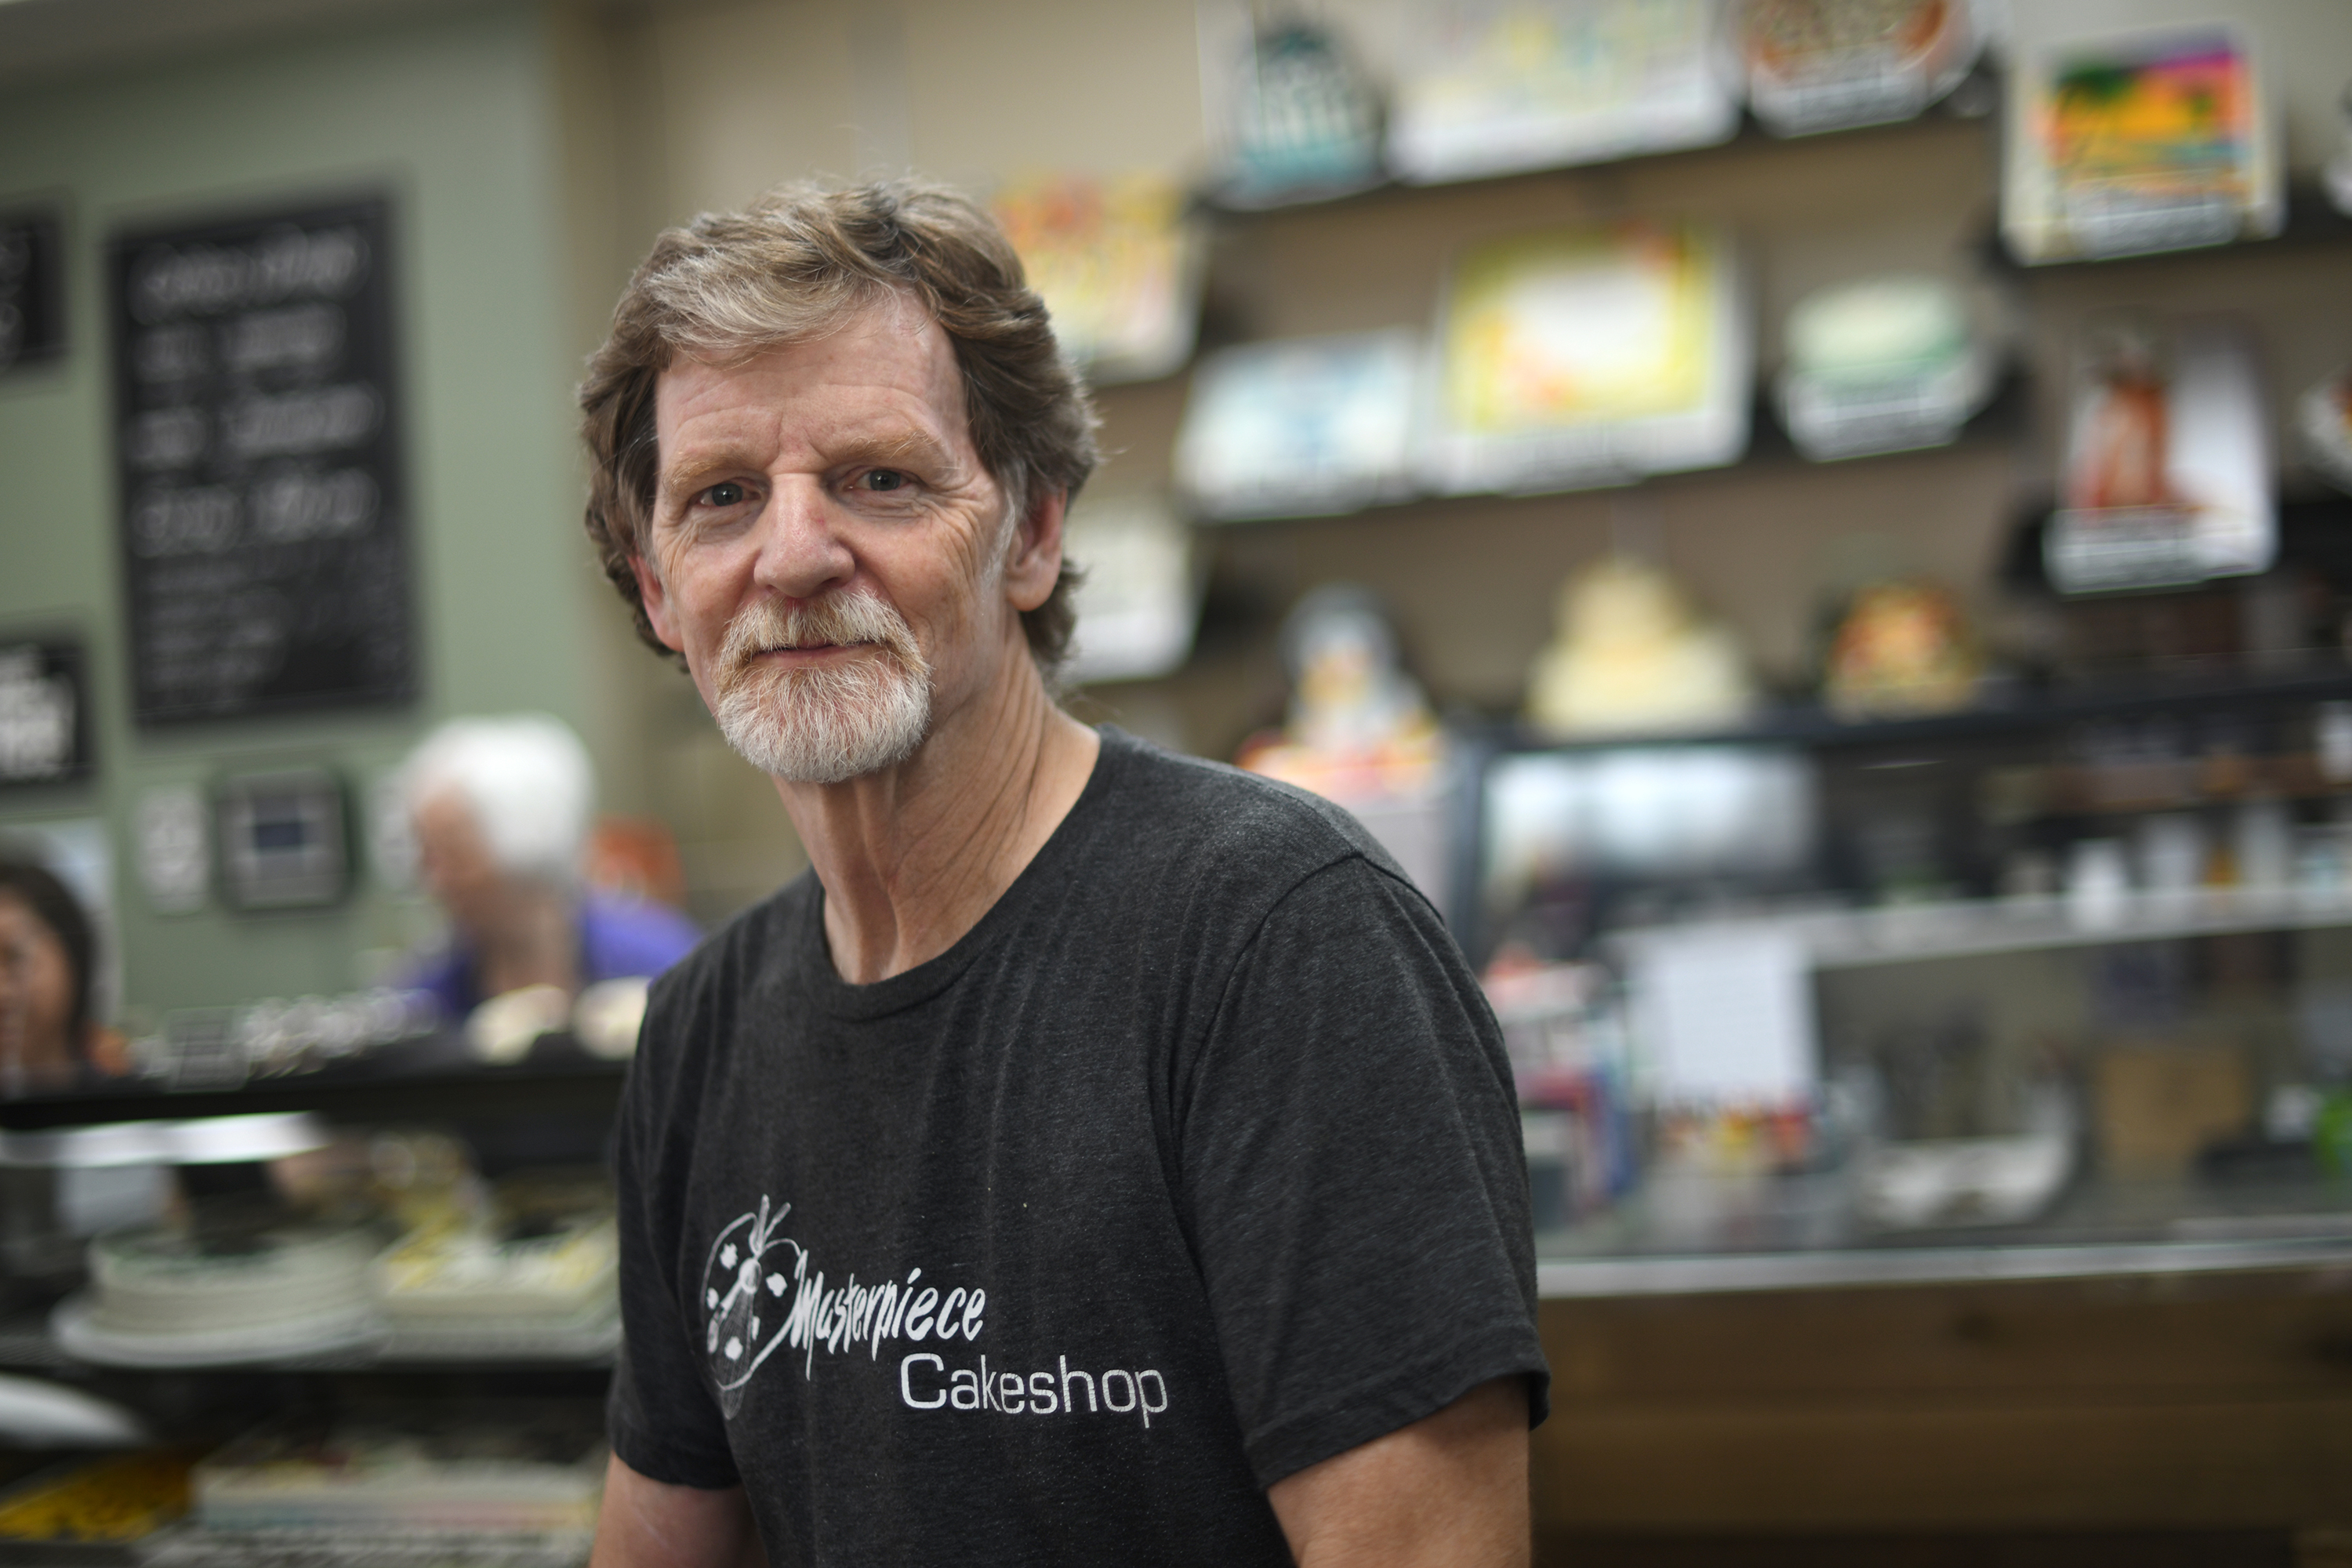 Colorado judge finds Christian baker broke state discrimination law by refusing to bake a birthday cake for a trans woman